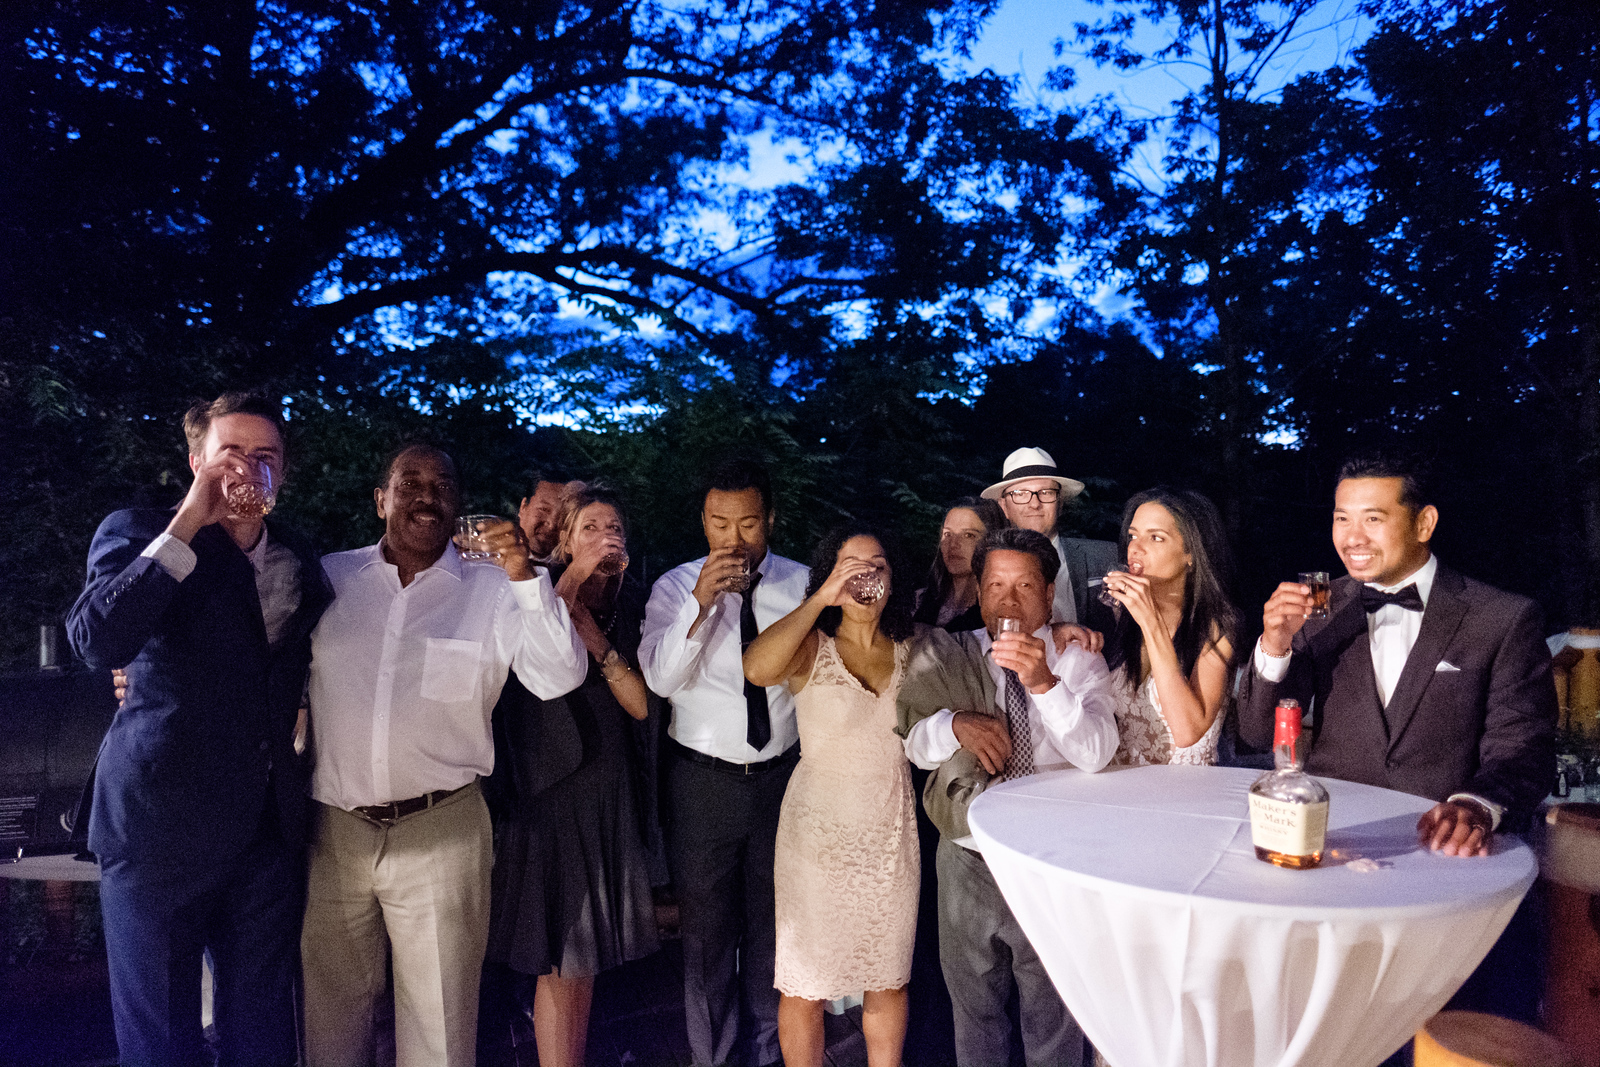 Elizabeth & Pitra's Backyard Wedding